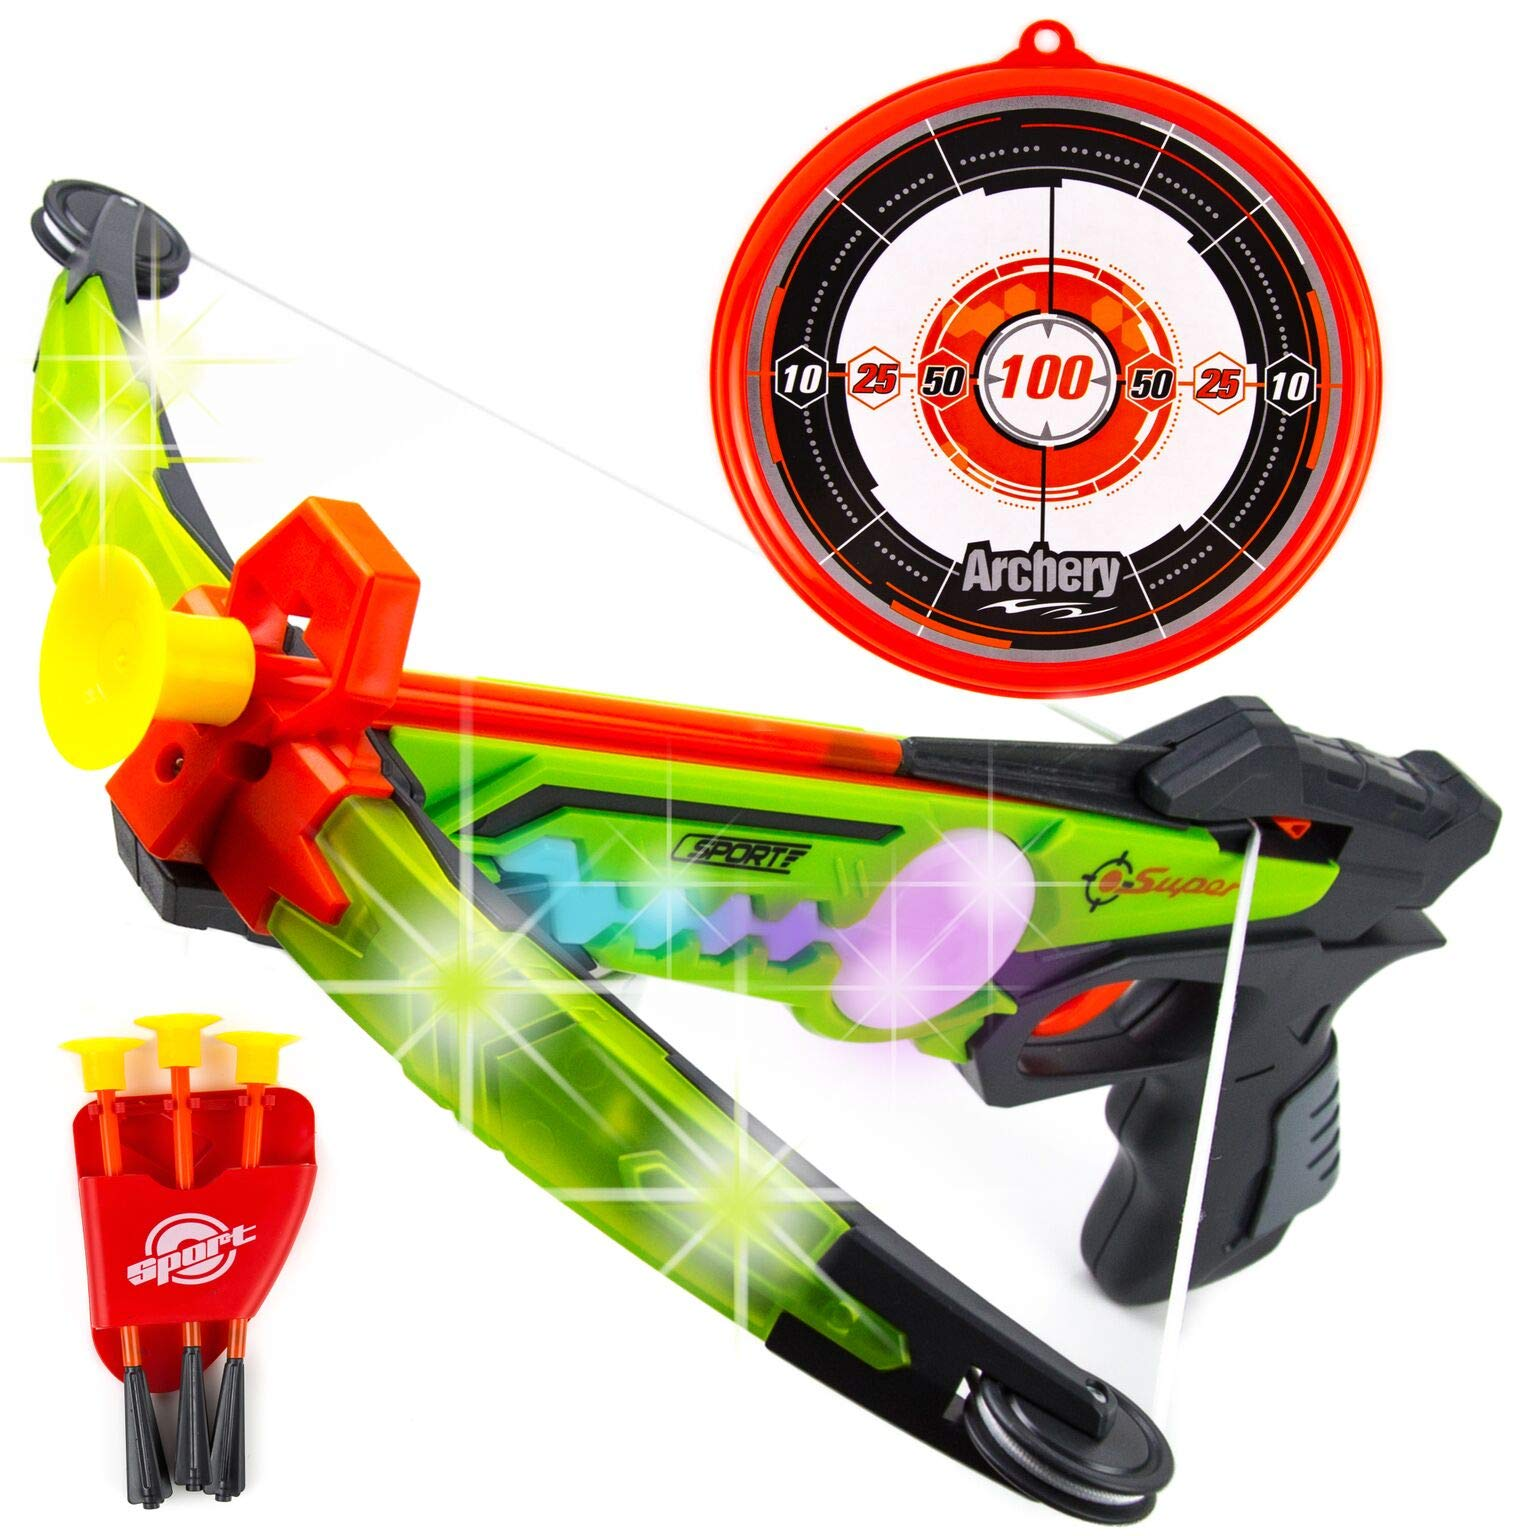 Toysery Real Crossbow Archery Set - Comes with Suction Cup Arrows and Target - Great for Indoor and Outdoor Game - Designed with LED Lights - Ultimate Fun for Kids